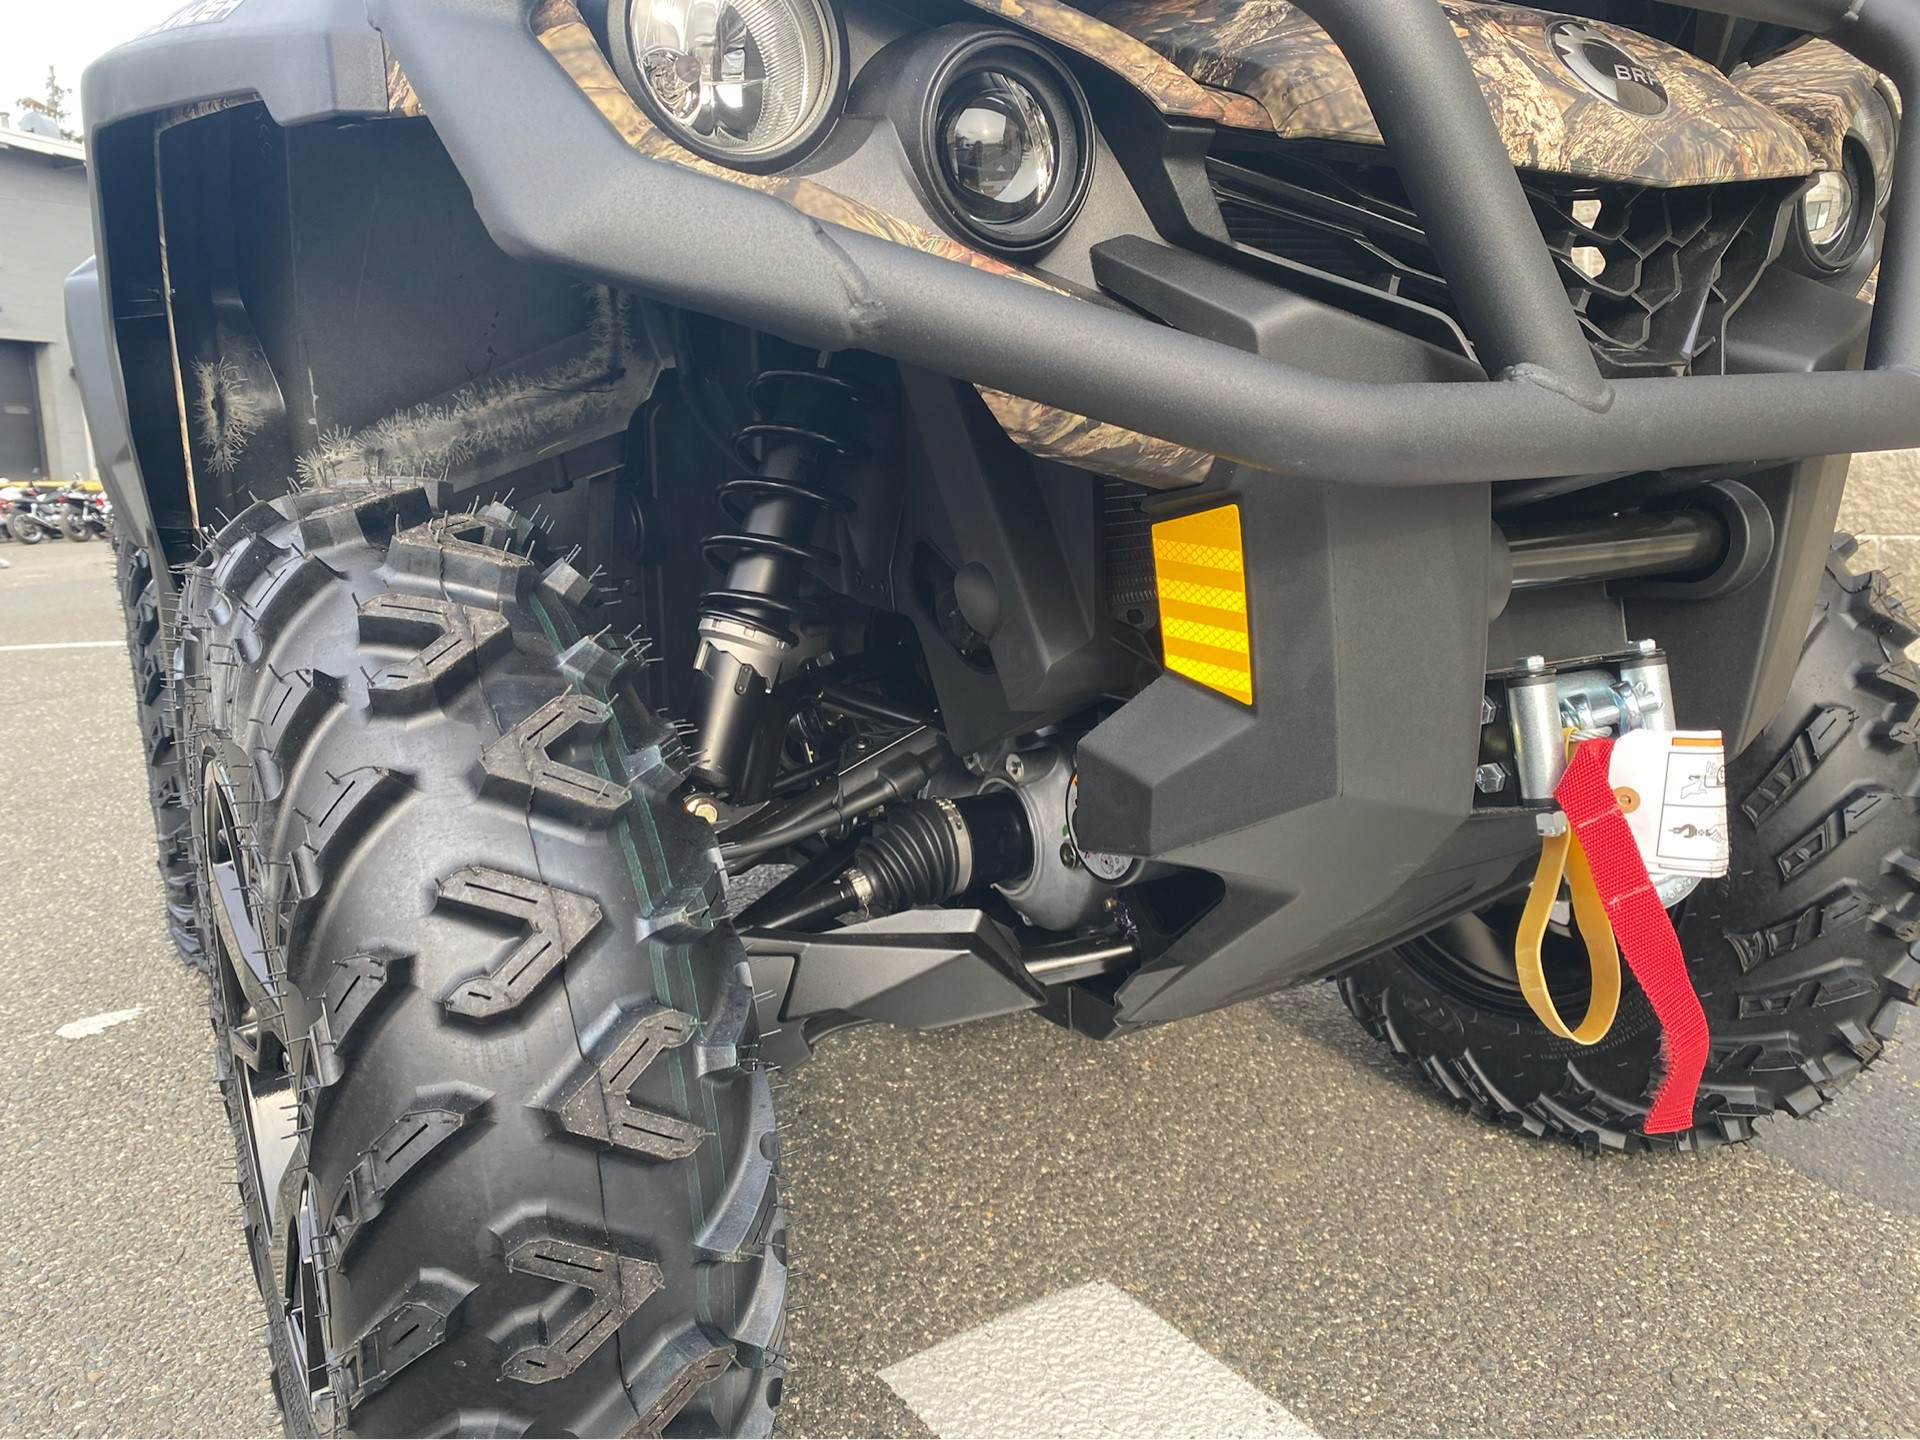 2020 Can-Am Outlander XT 1000R in Enfield, Connecticut - Photo 36